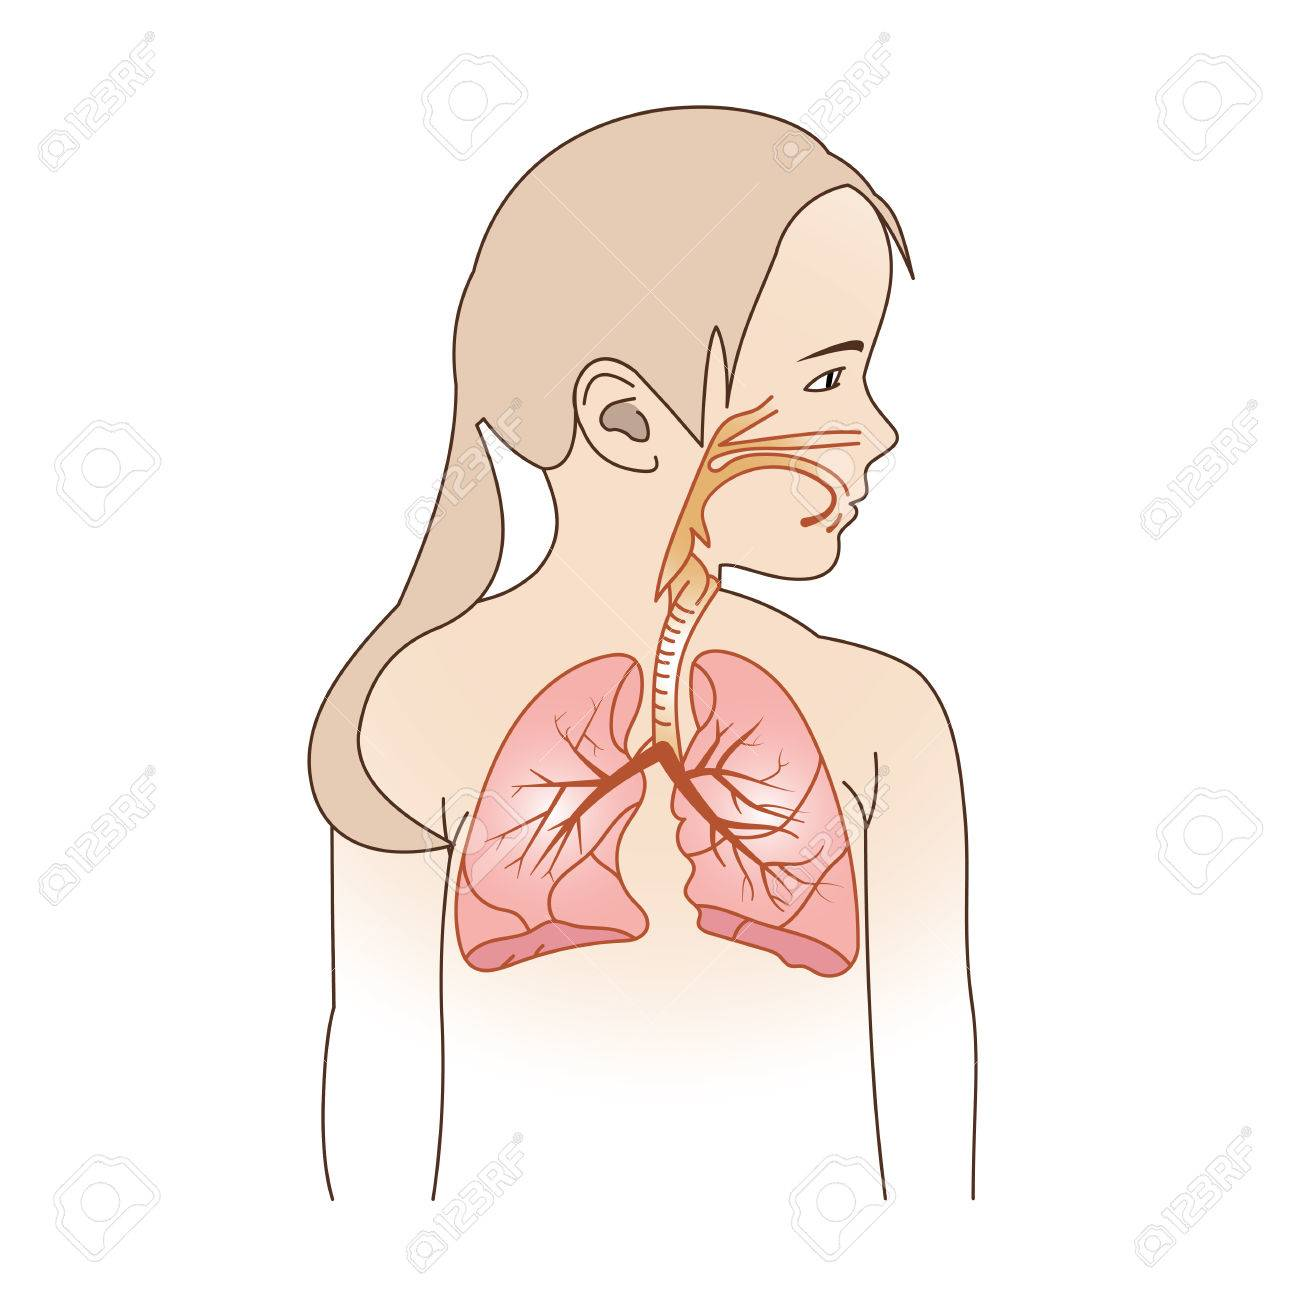 Vector Illustration of a Child Respiratory System Organs - 48552494